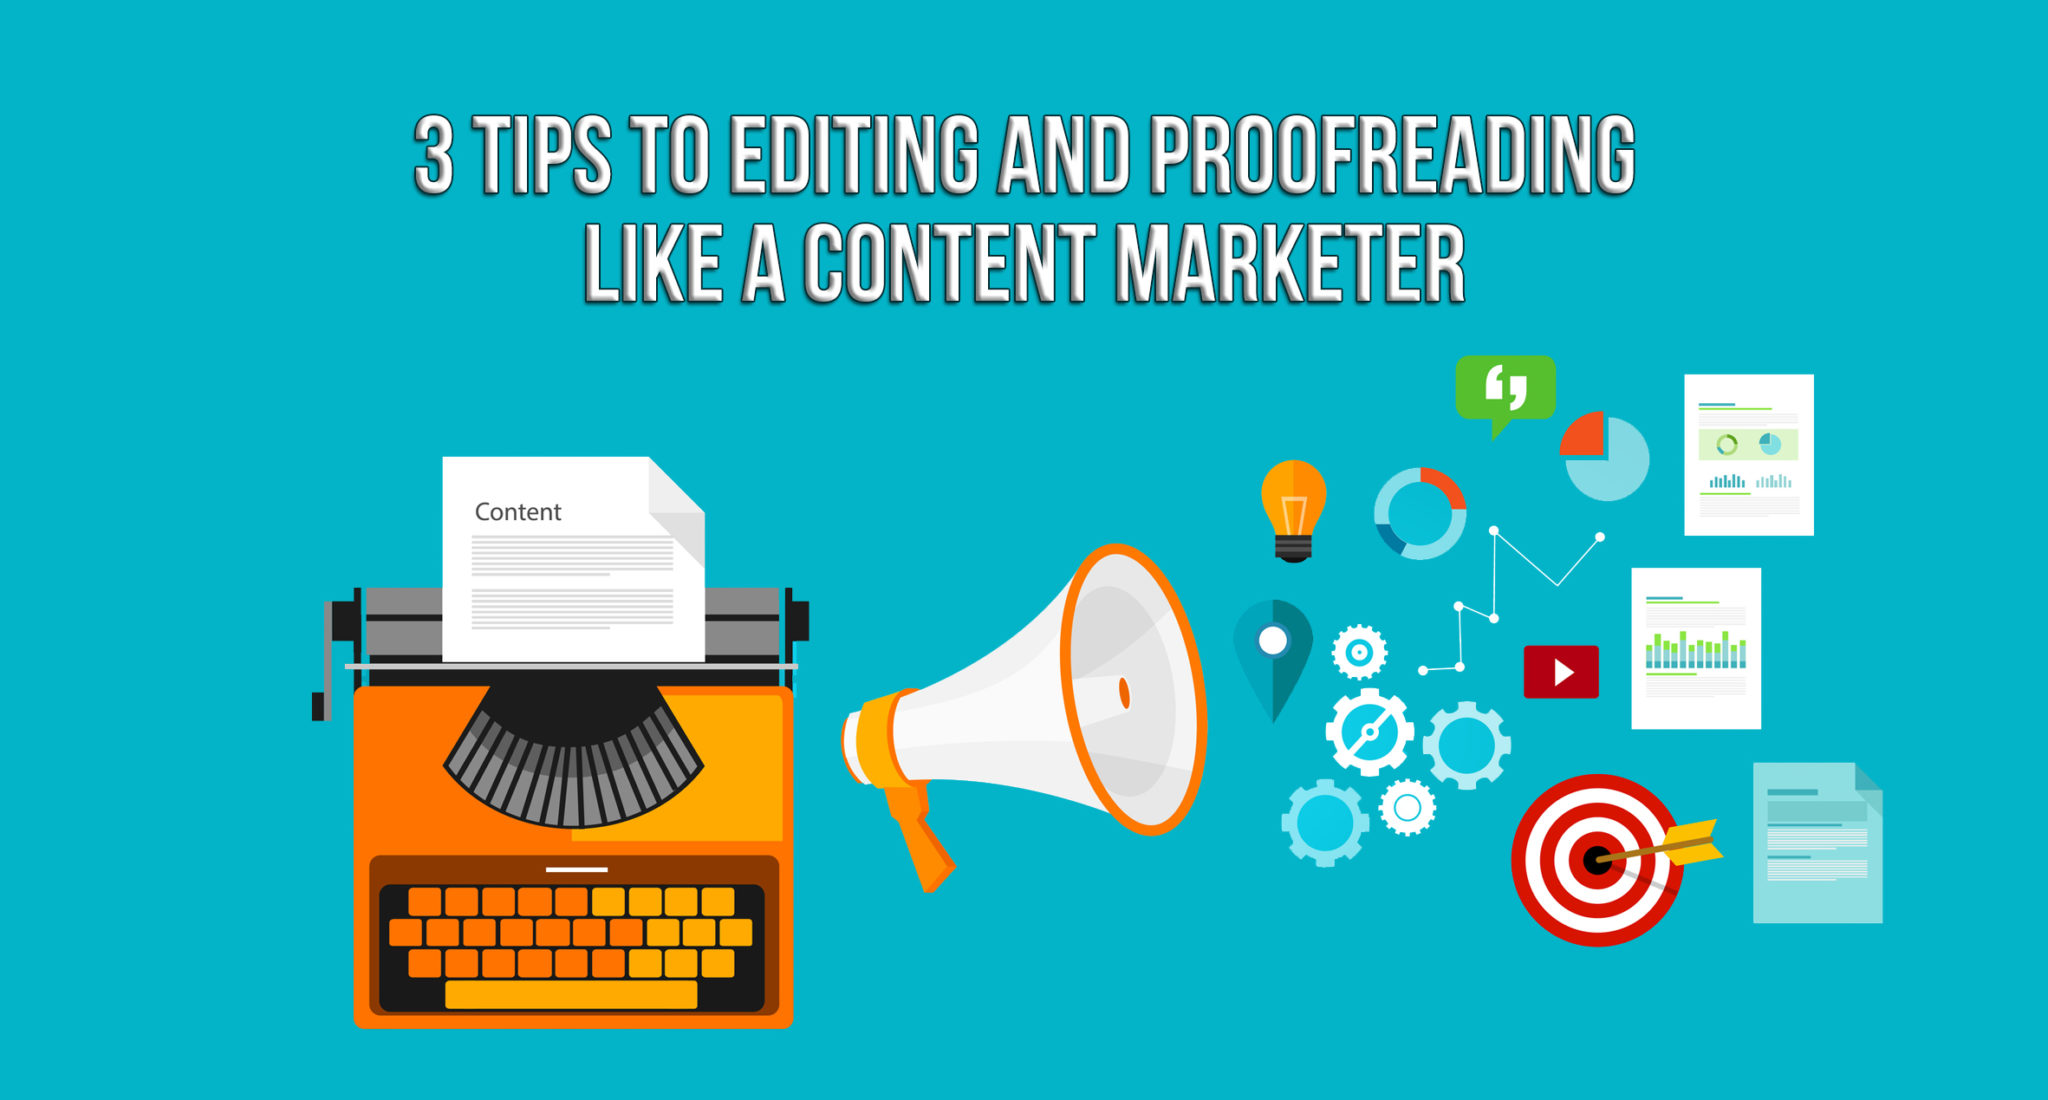 3 Tips to Editing and Proofreading Like a Content Marketer